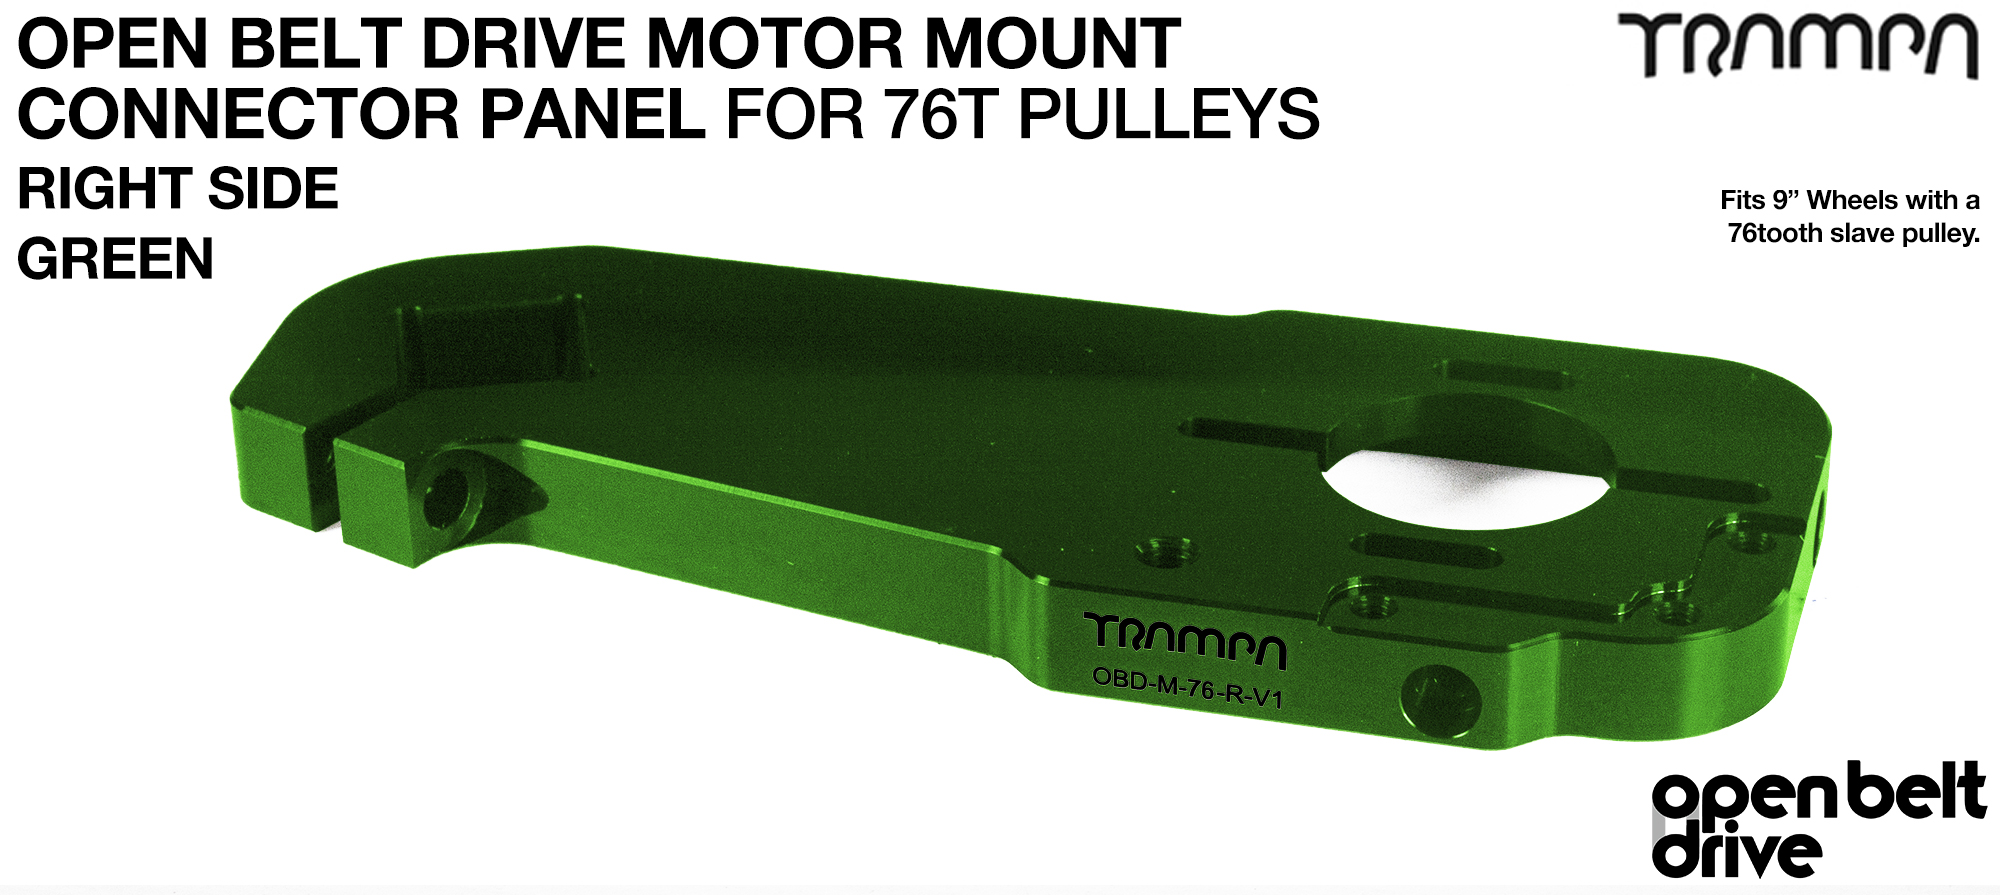 OBD Motor Mount Connector Panel for 76 tooth Pulleys - GOOFY - GREEN